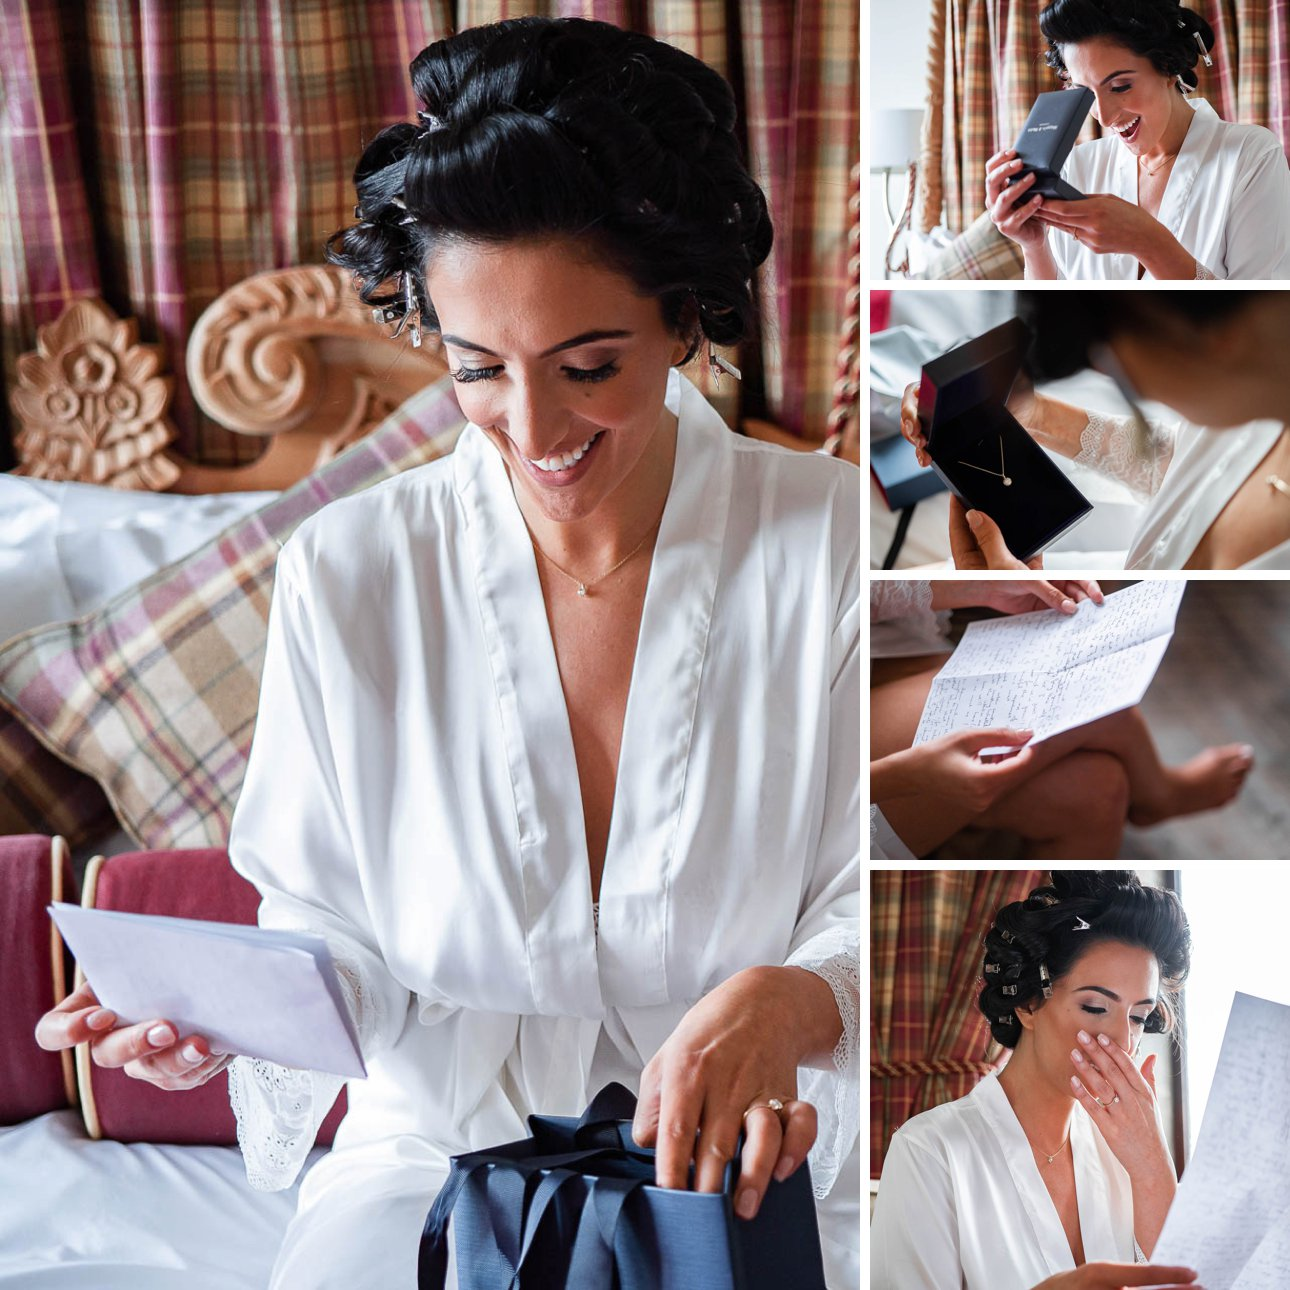 A bride opens a gift and letter from her fiance on her wedding morning.